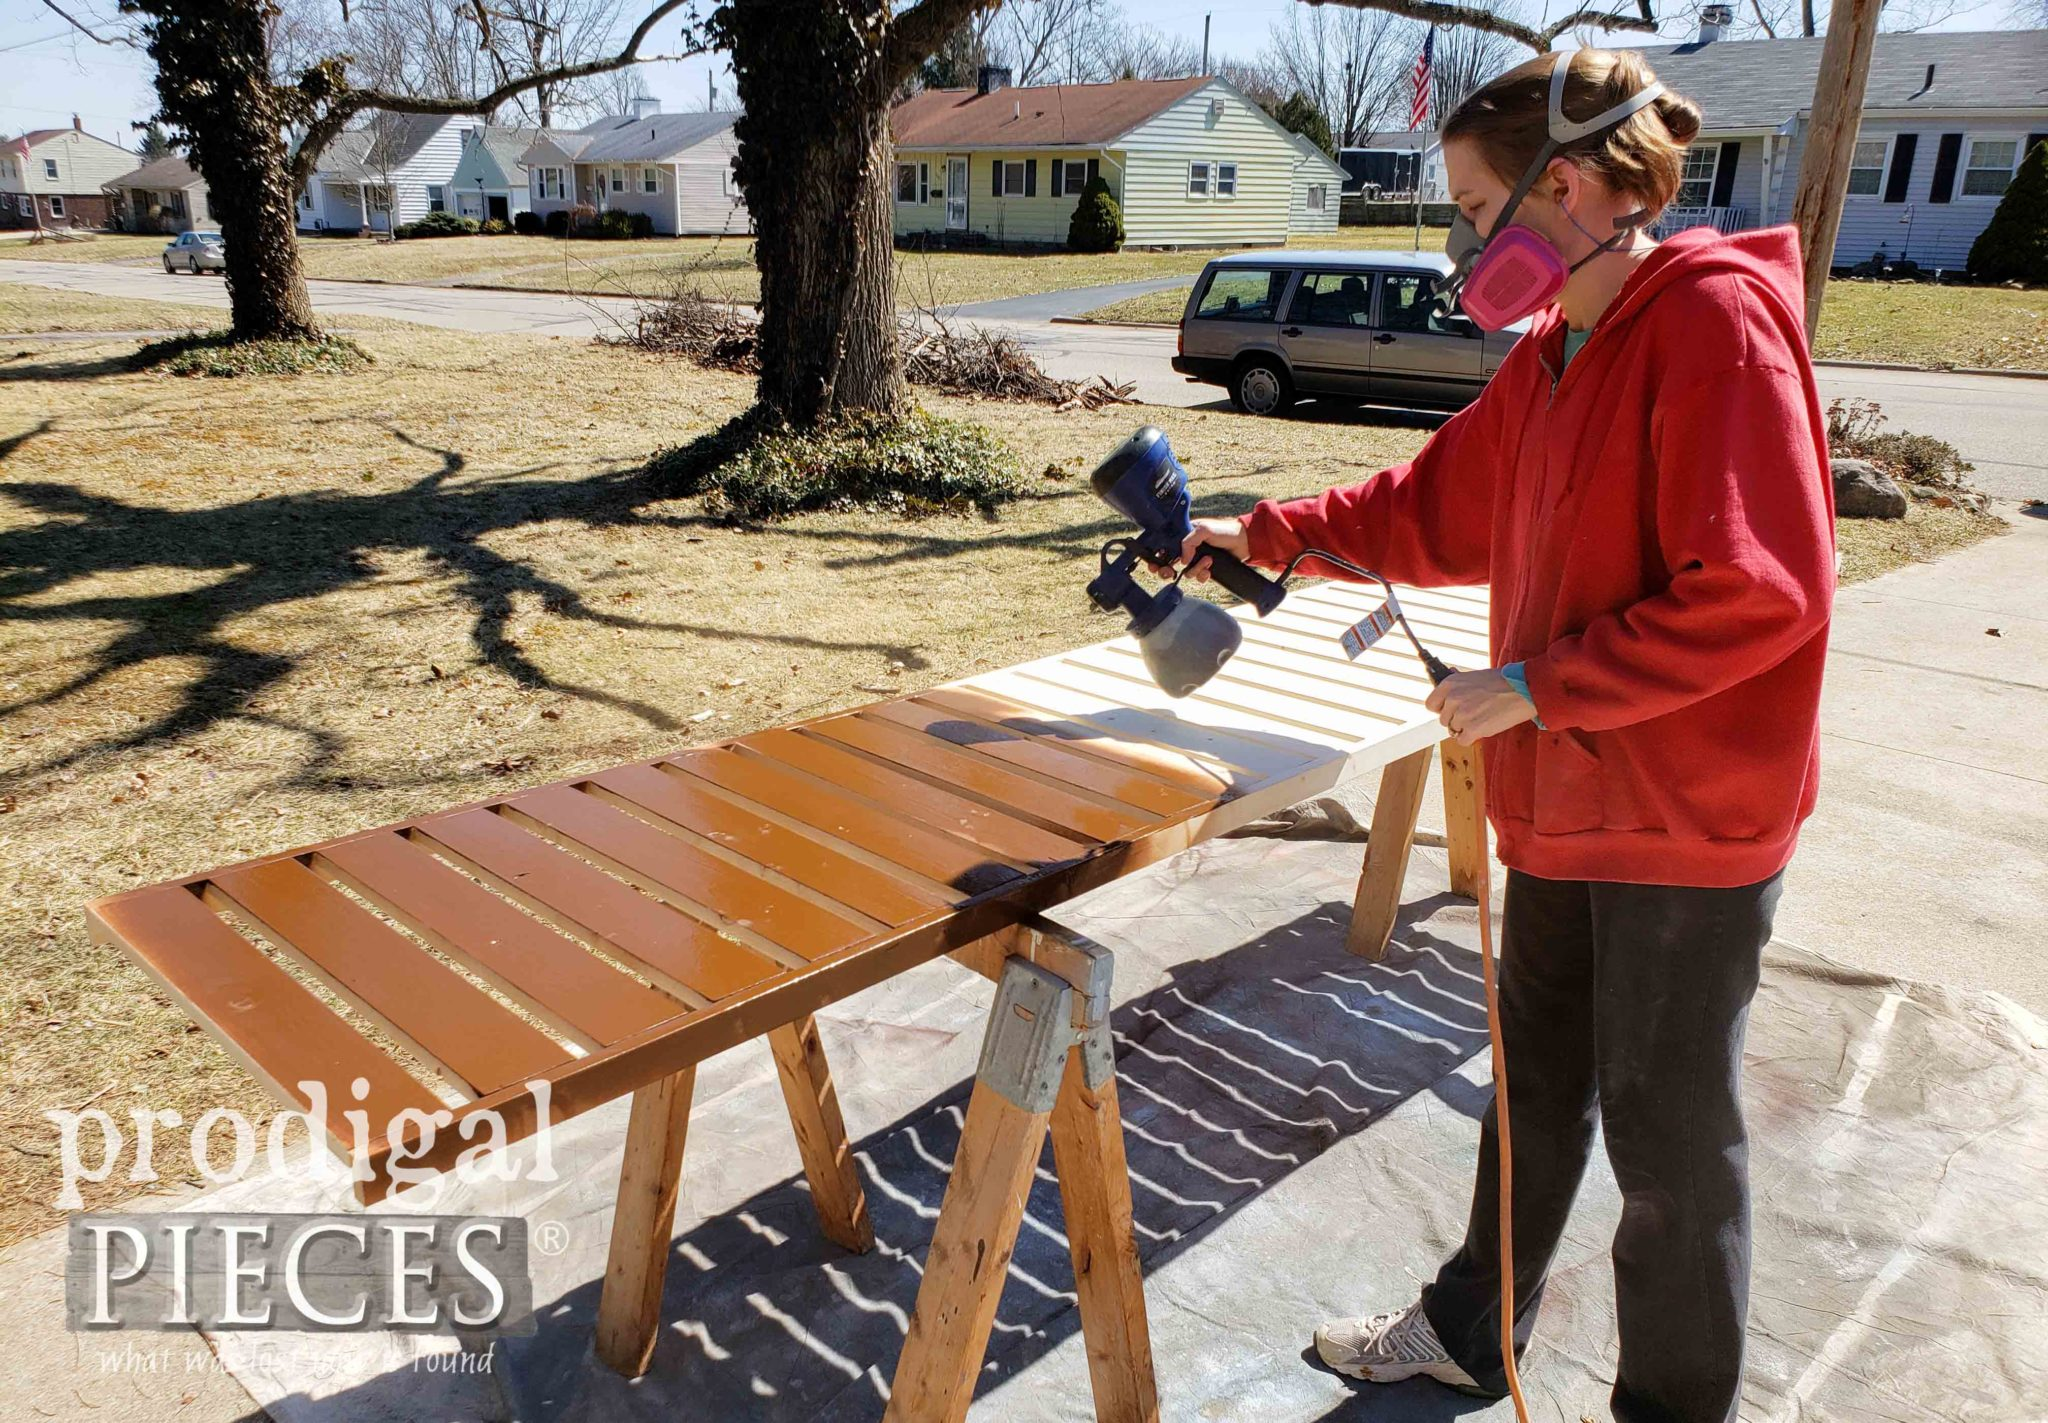 Spraying Stain on DIY Shoe Storage with HomeRight Super Finish Max Extra | by Prodigal Pieces | prodigalpieces.com #prodigalpieces #diy #home #homedecor #storage